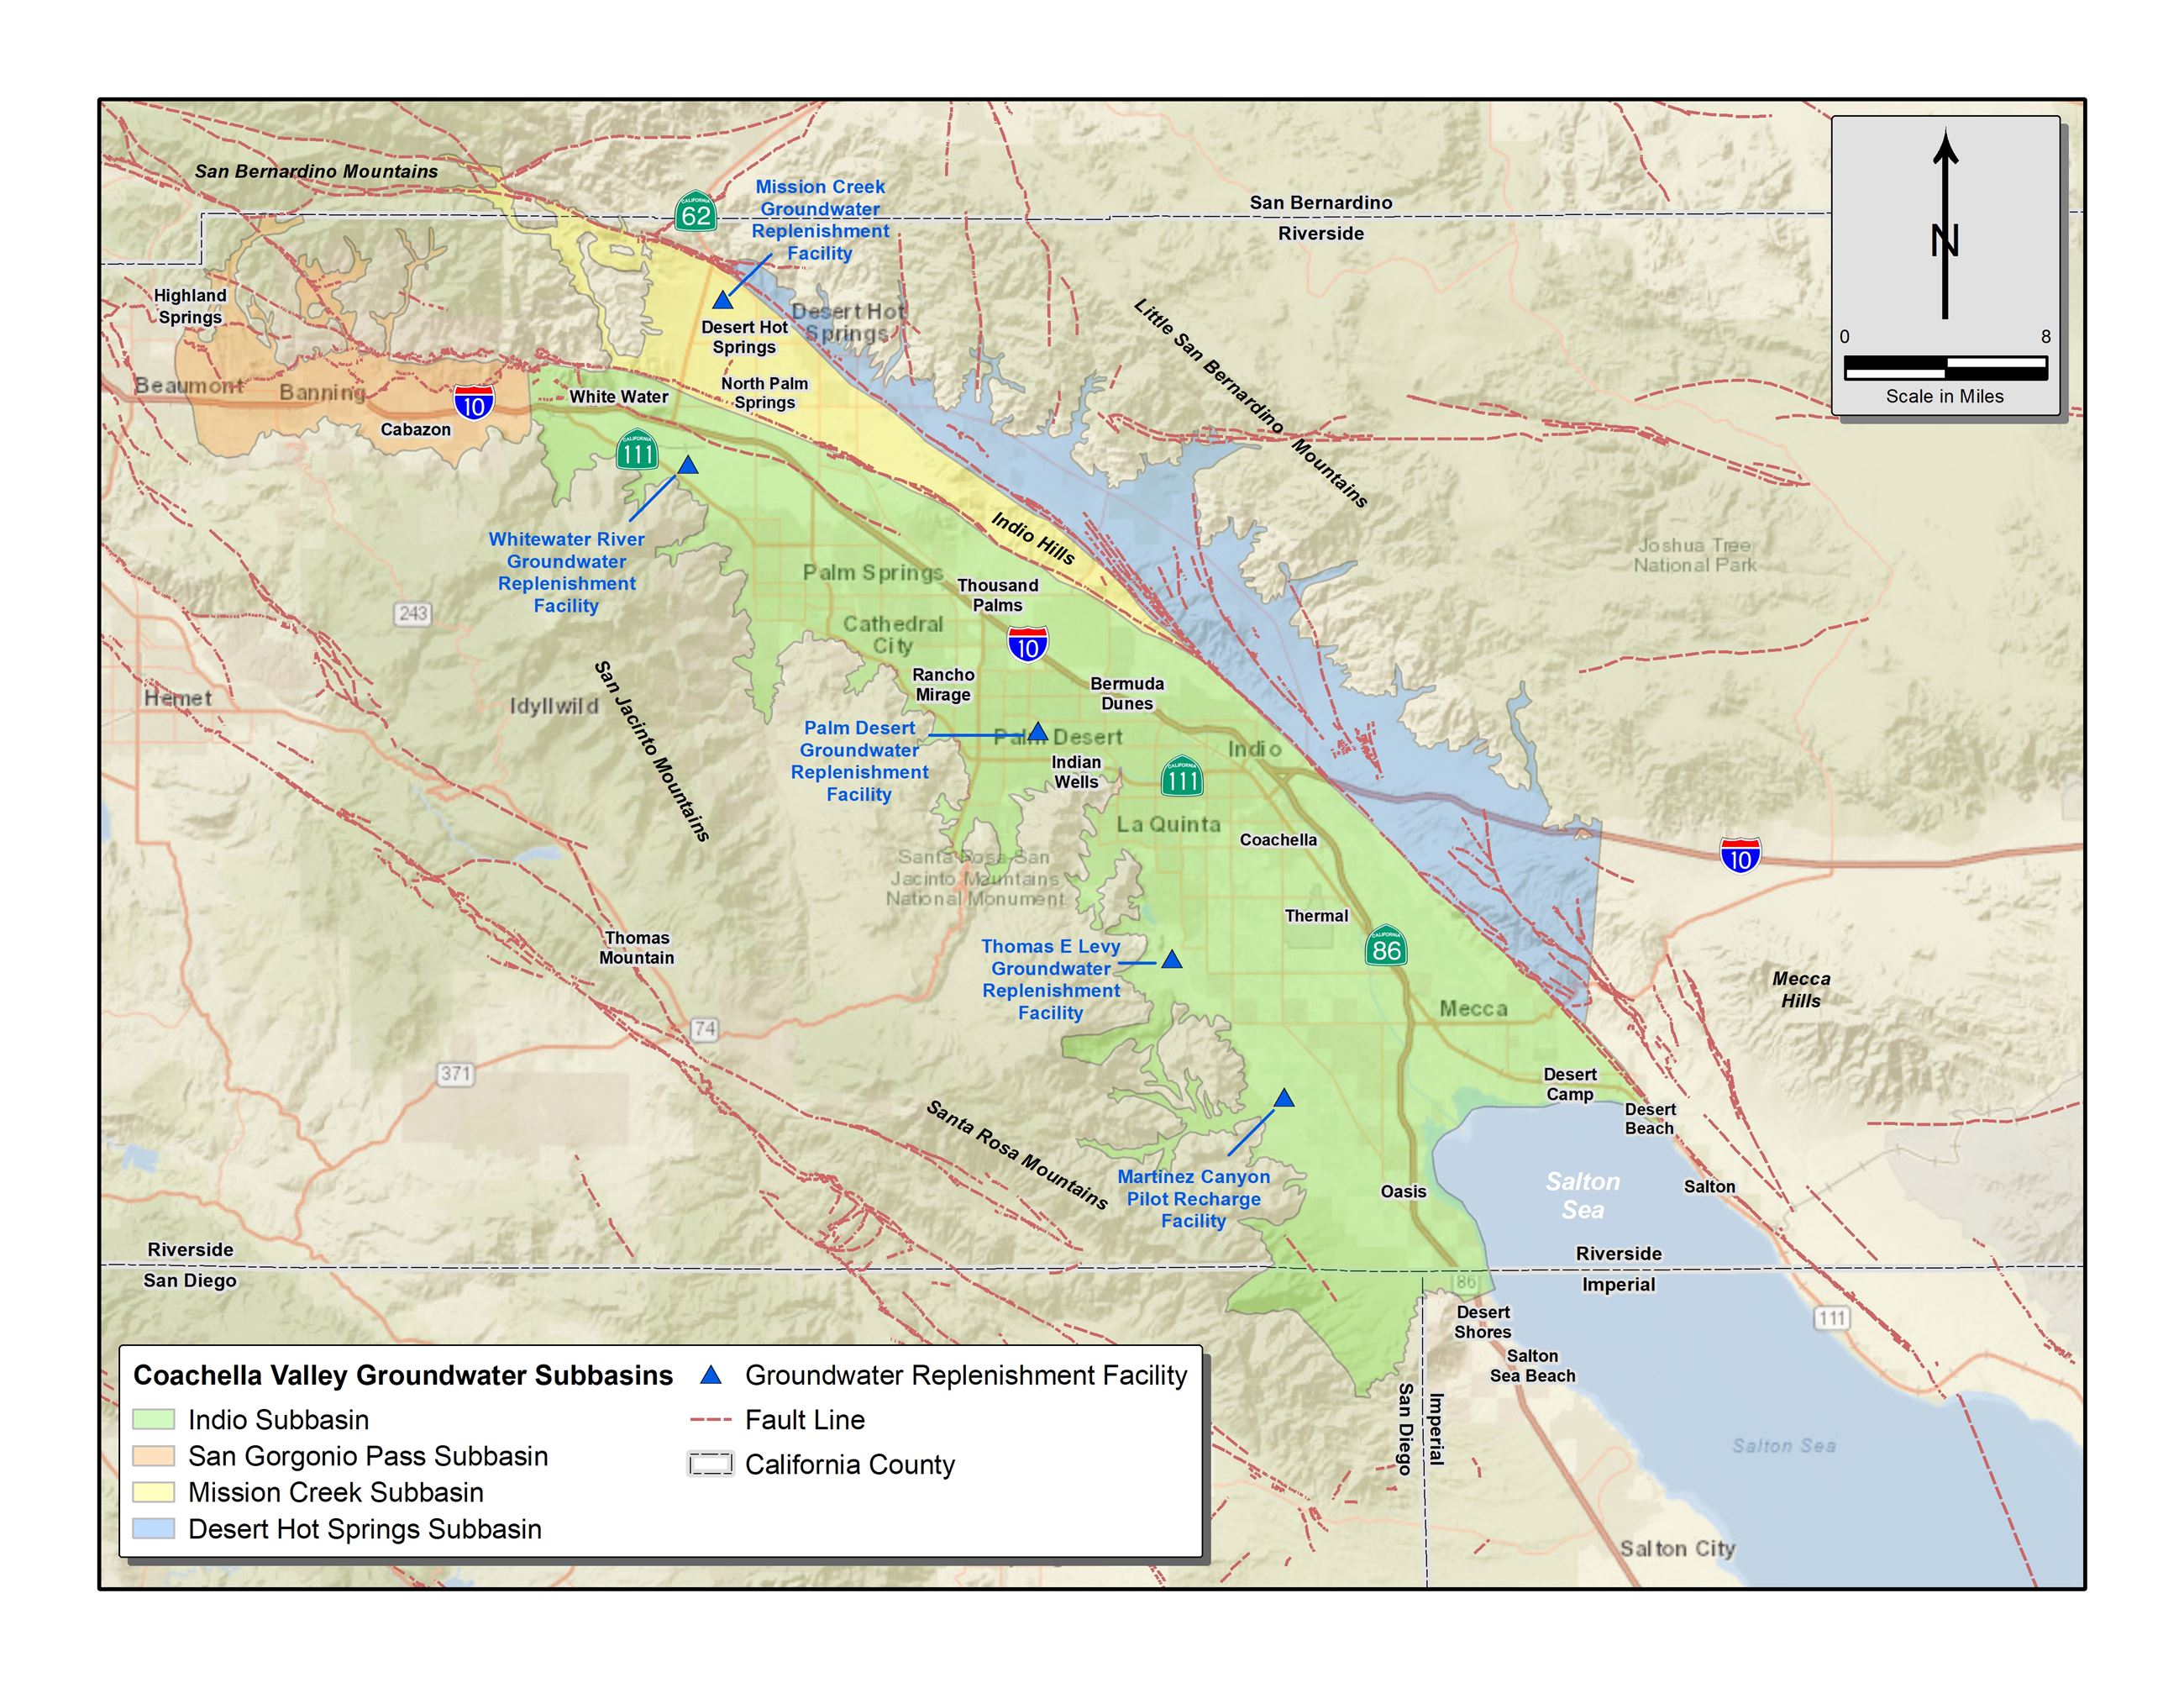 Coachella Valley Groundwater Basin and Subbasins